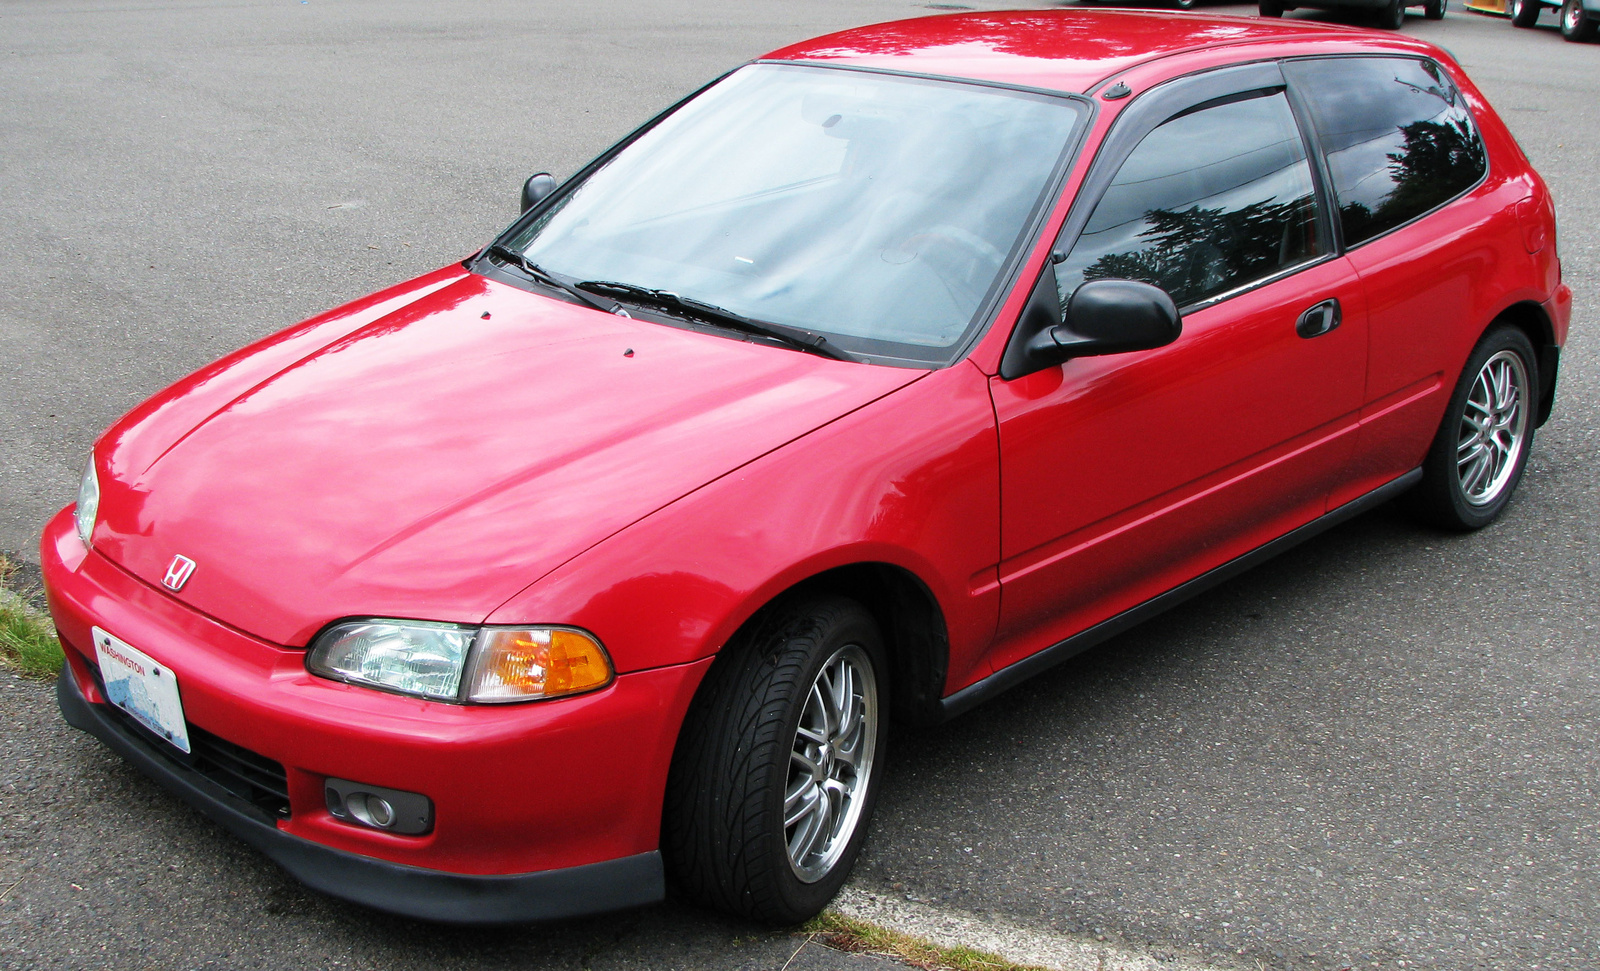 1993 honda civic hatchback - photo #33